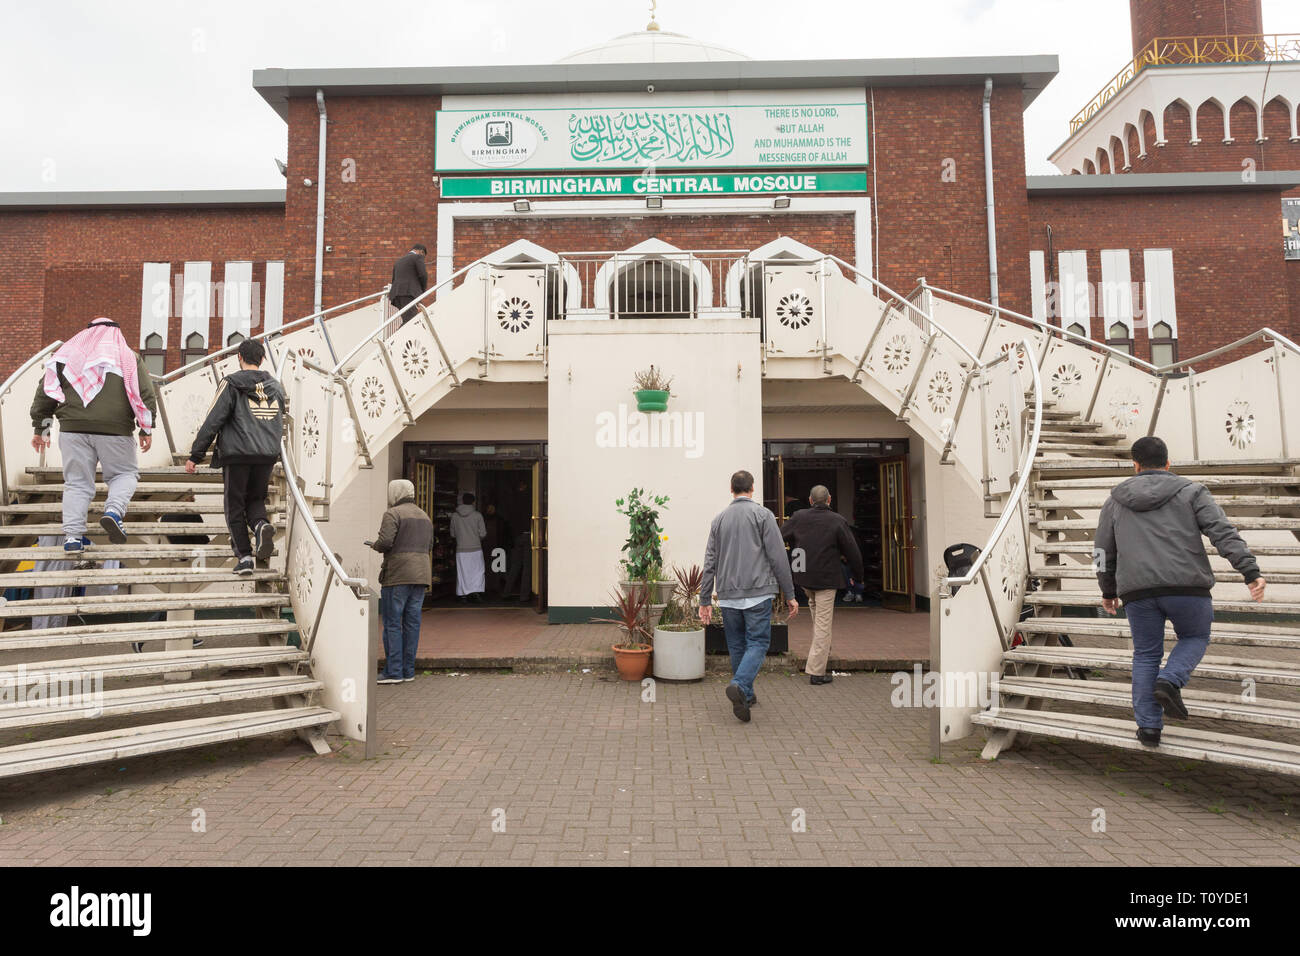 Birmingham, UK. 22nd March, 2019. A week after the New Zealand mosque murders and less than 48 hours after several Birmingham mosques were vandalised, people arrive for Friday prayers at the Birmingham Central Mosque. There is a police presence for reassurance and security. Peter Lopeman/Alamy Live News - Stock Image